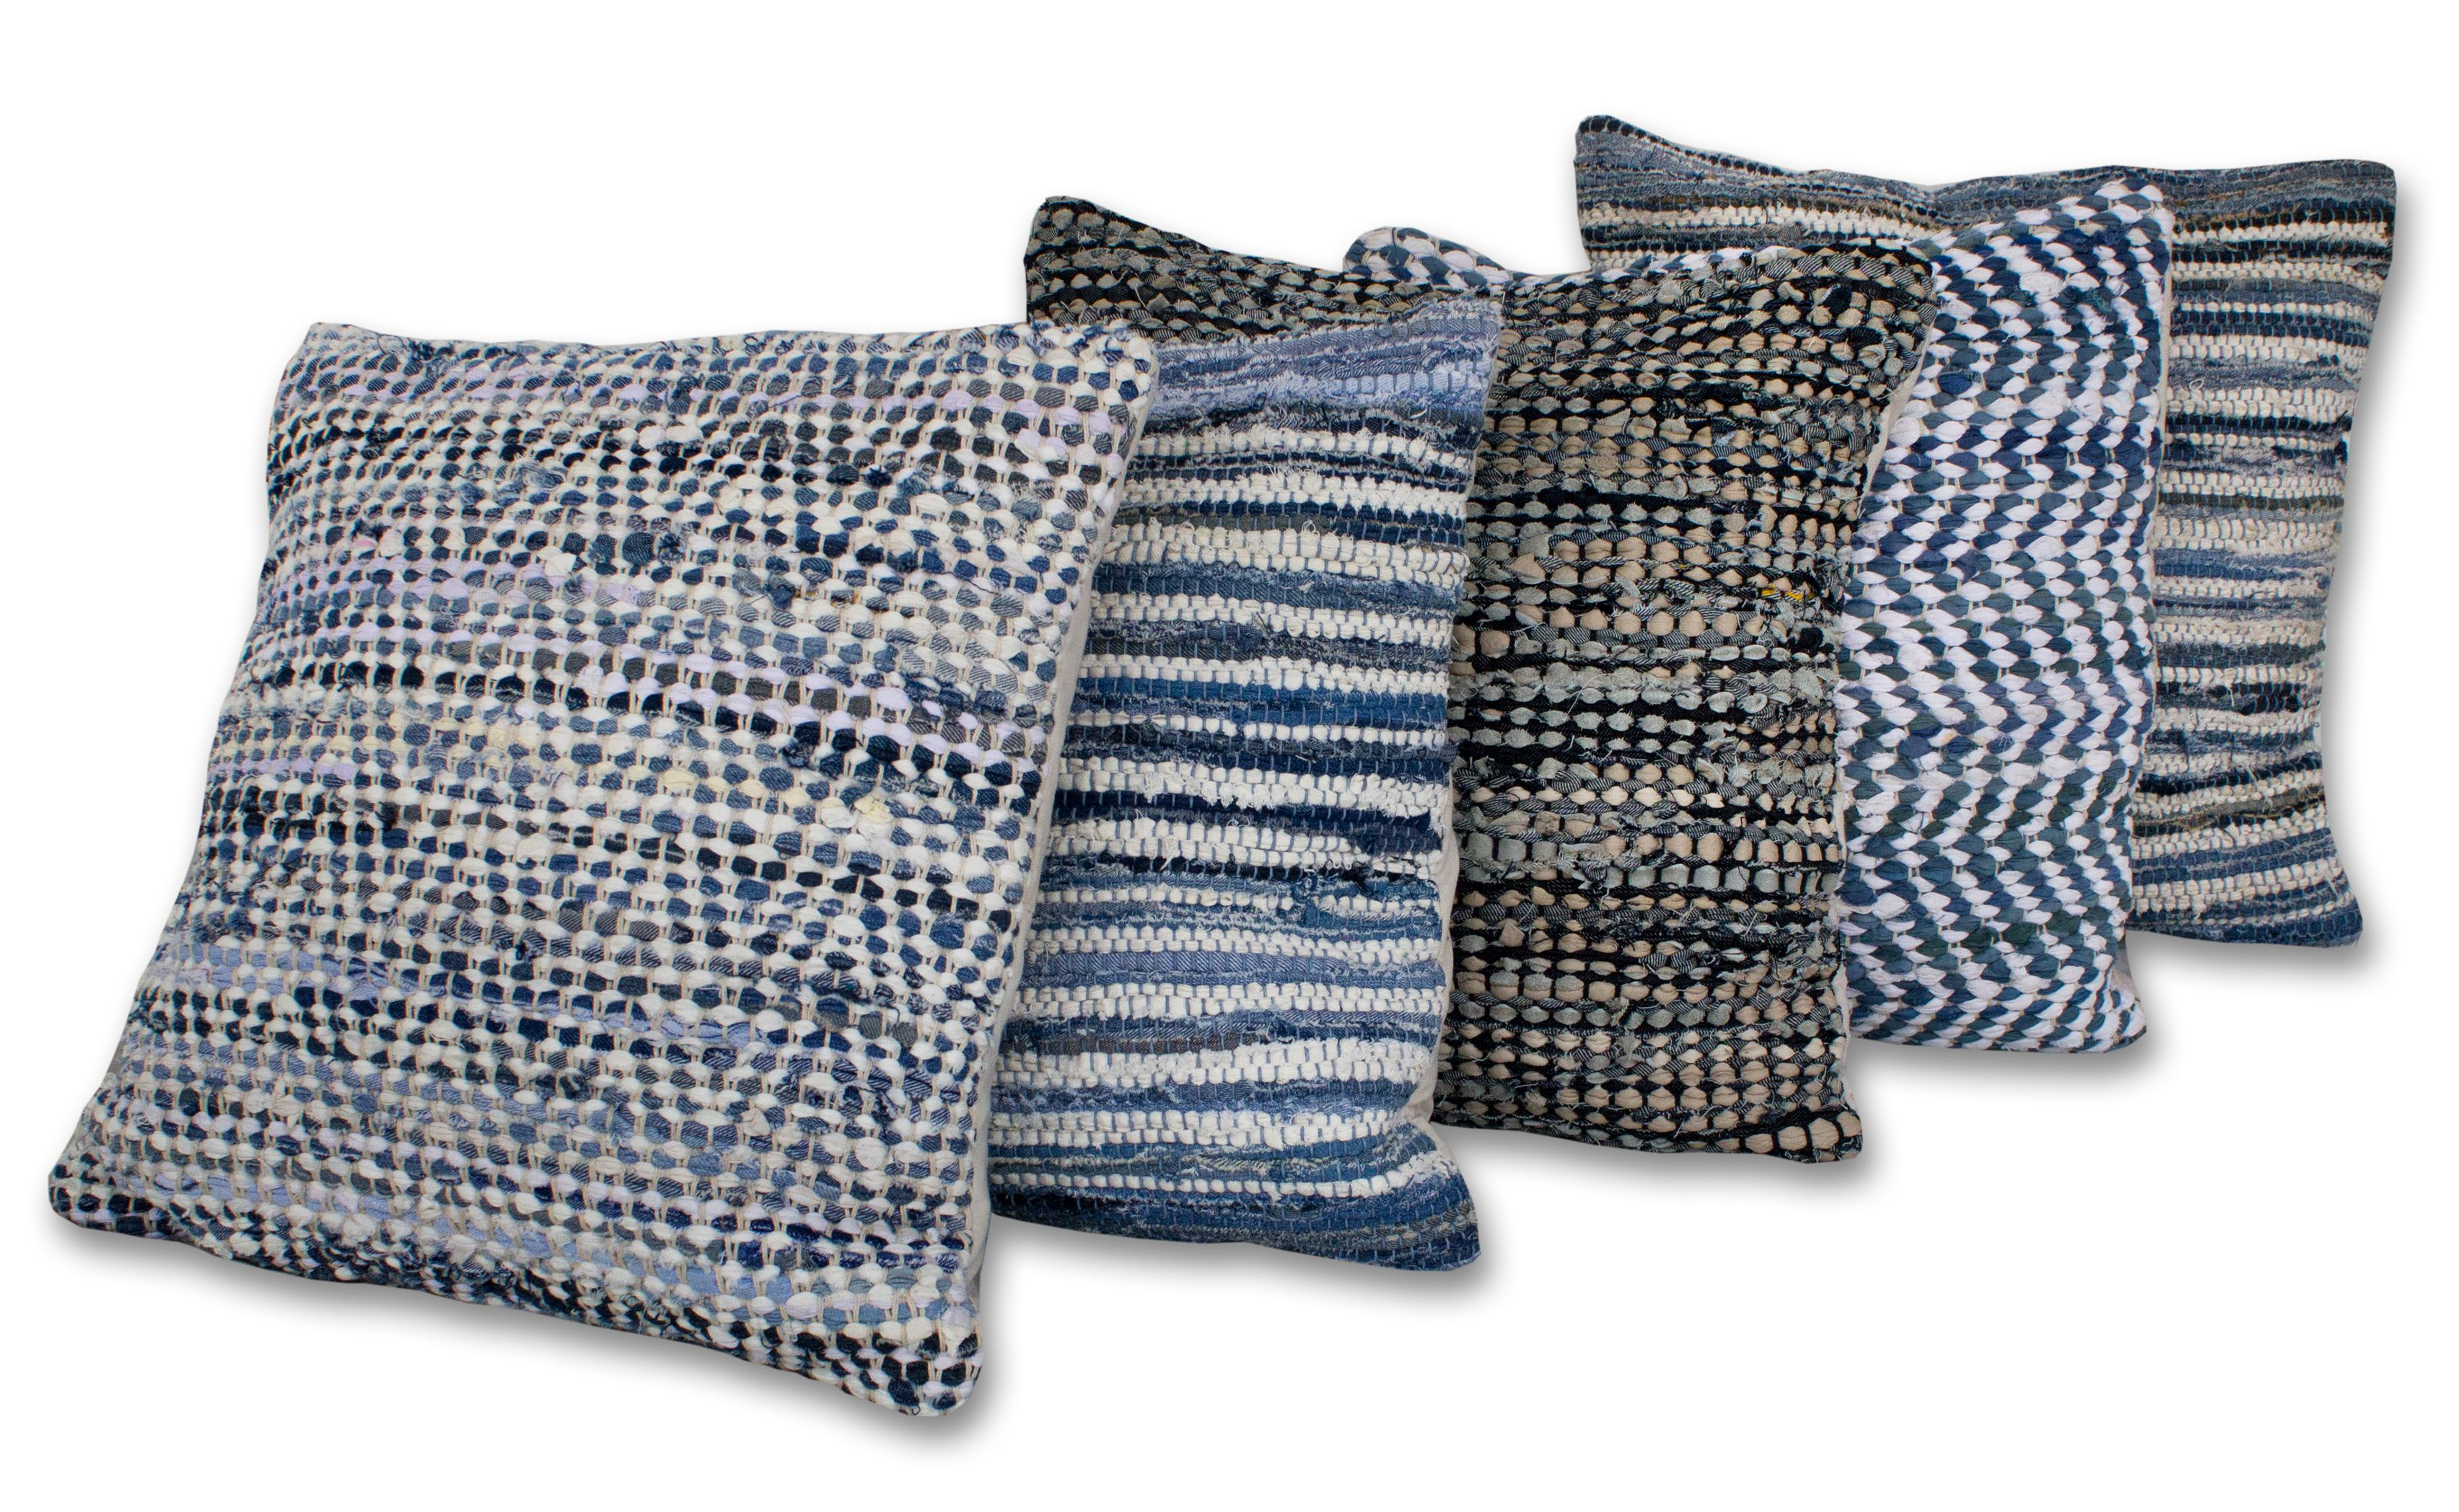 A Selection Of Our Upcycled Sustainable Cushions Made